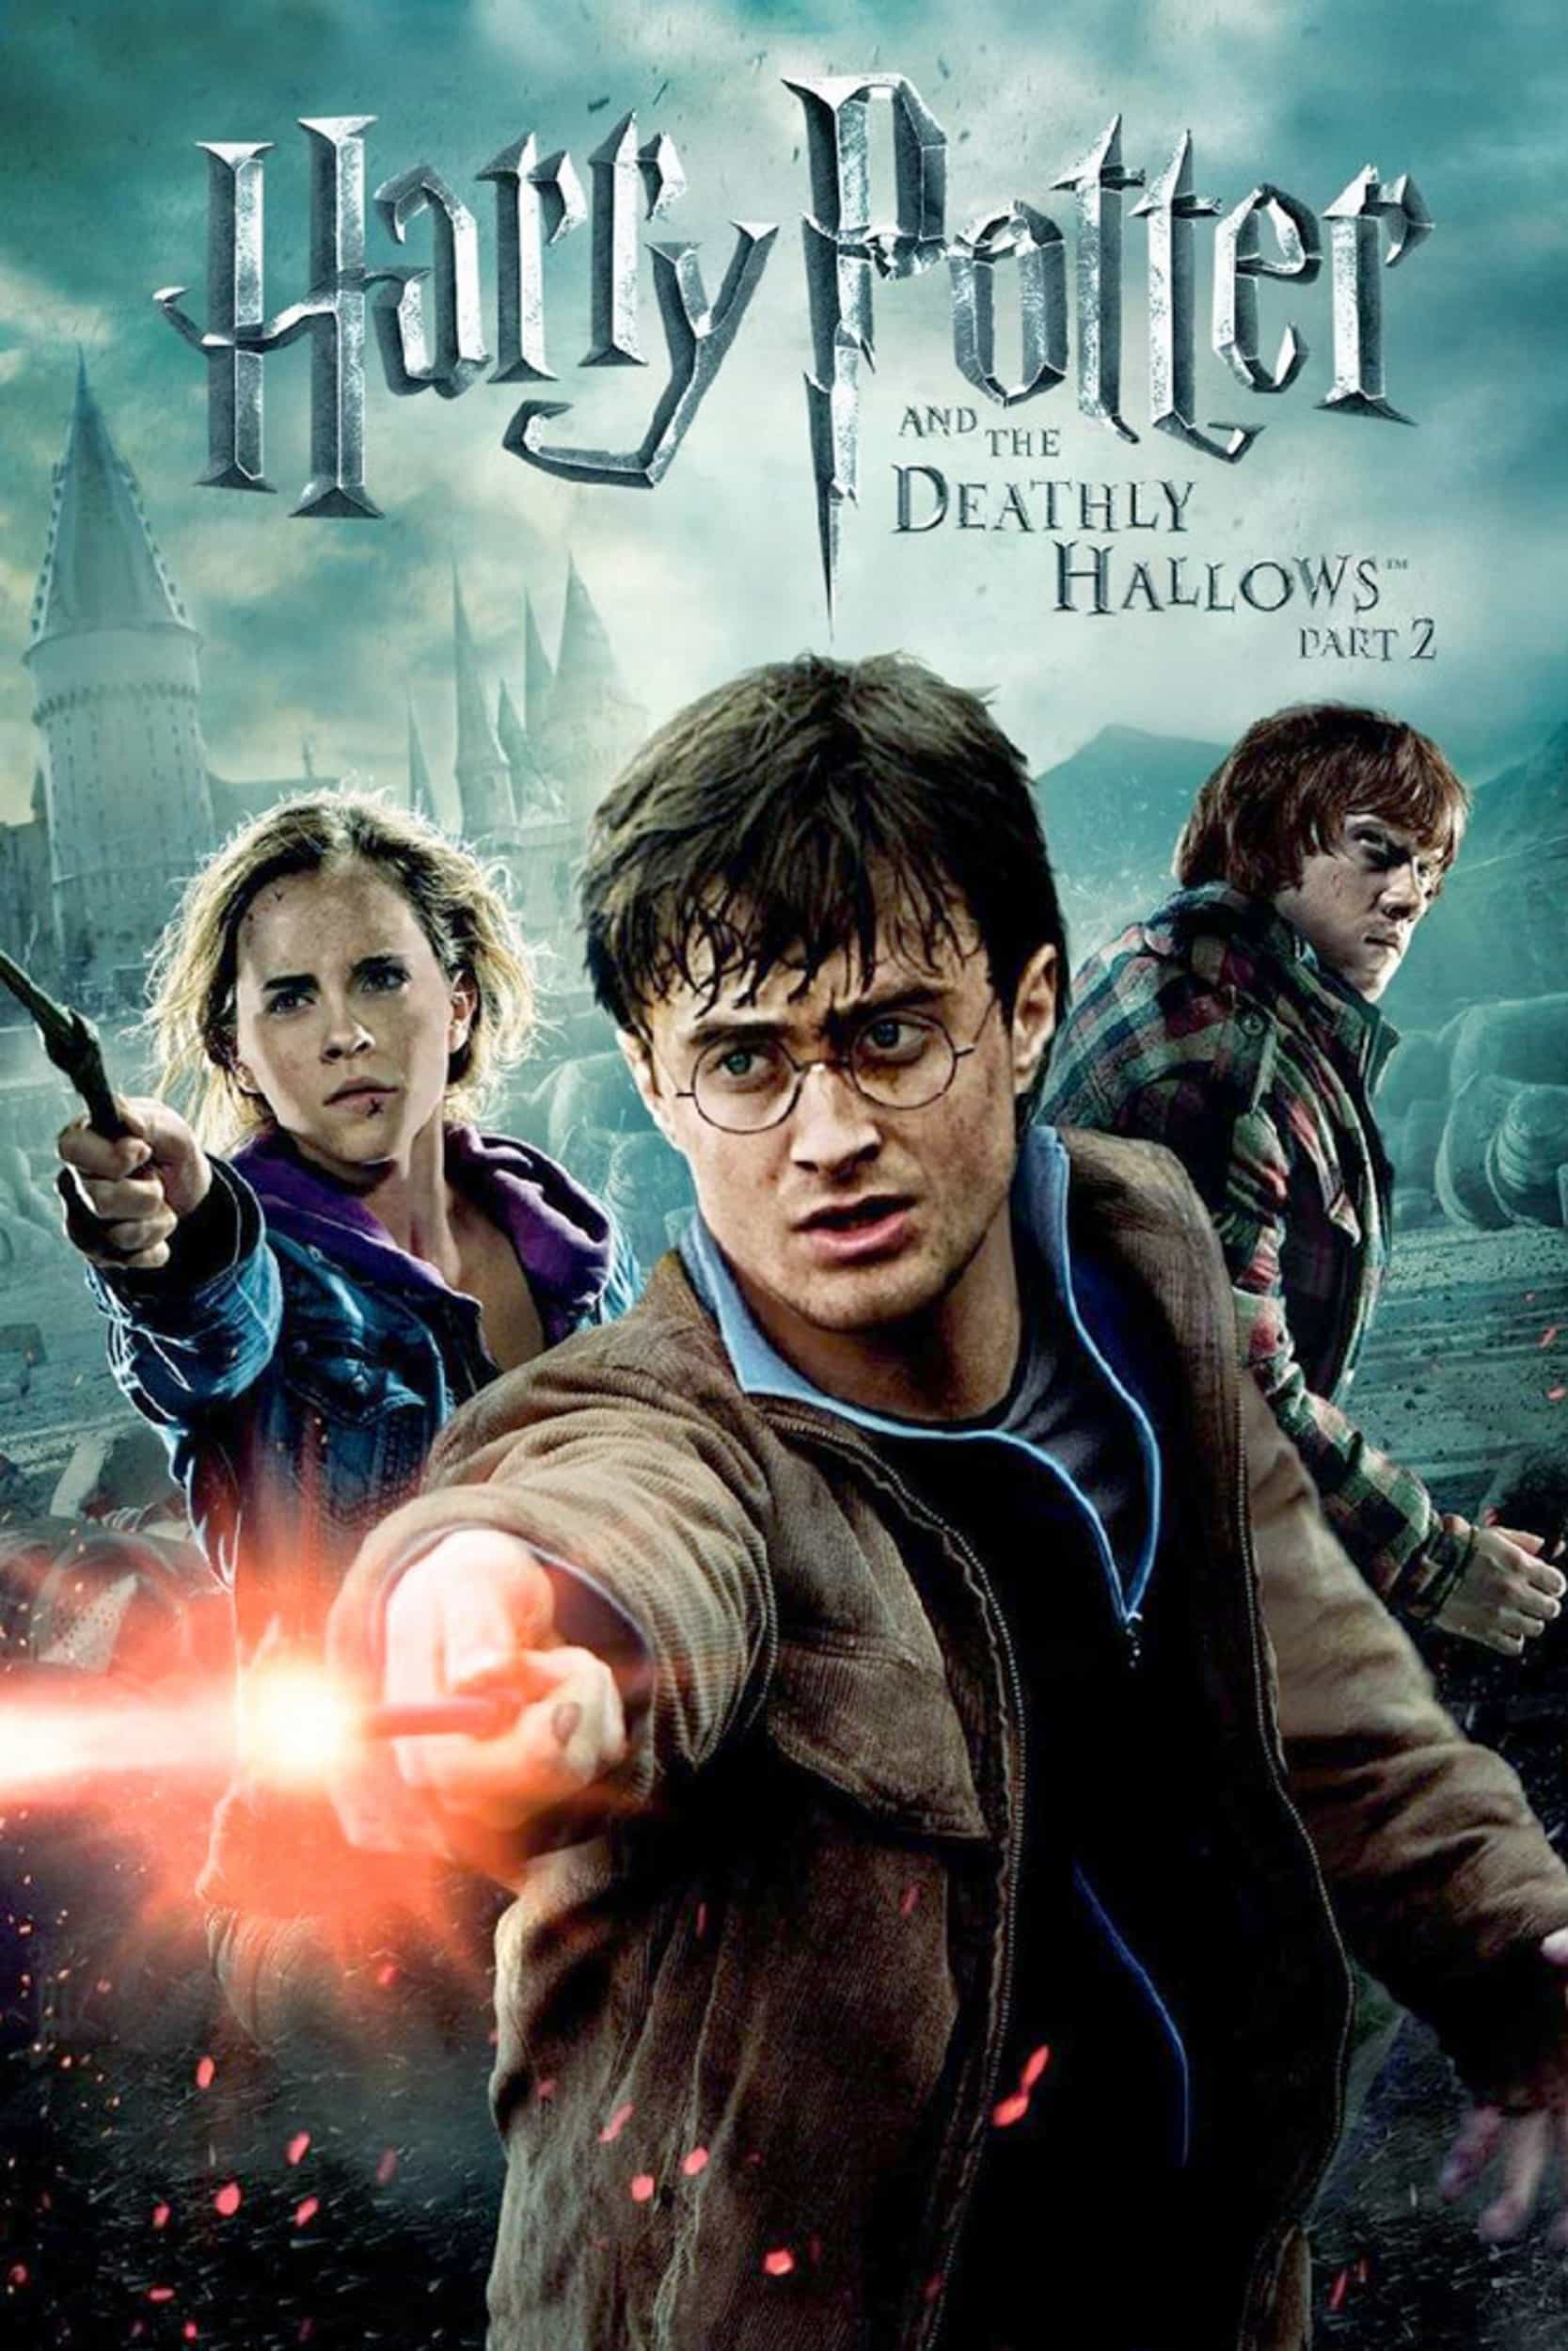 Harry Potter is top film at the world box office for 2011